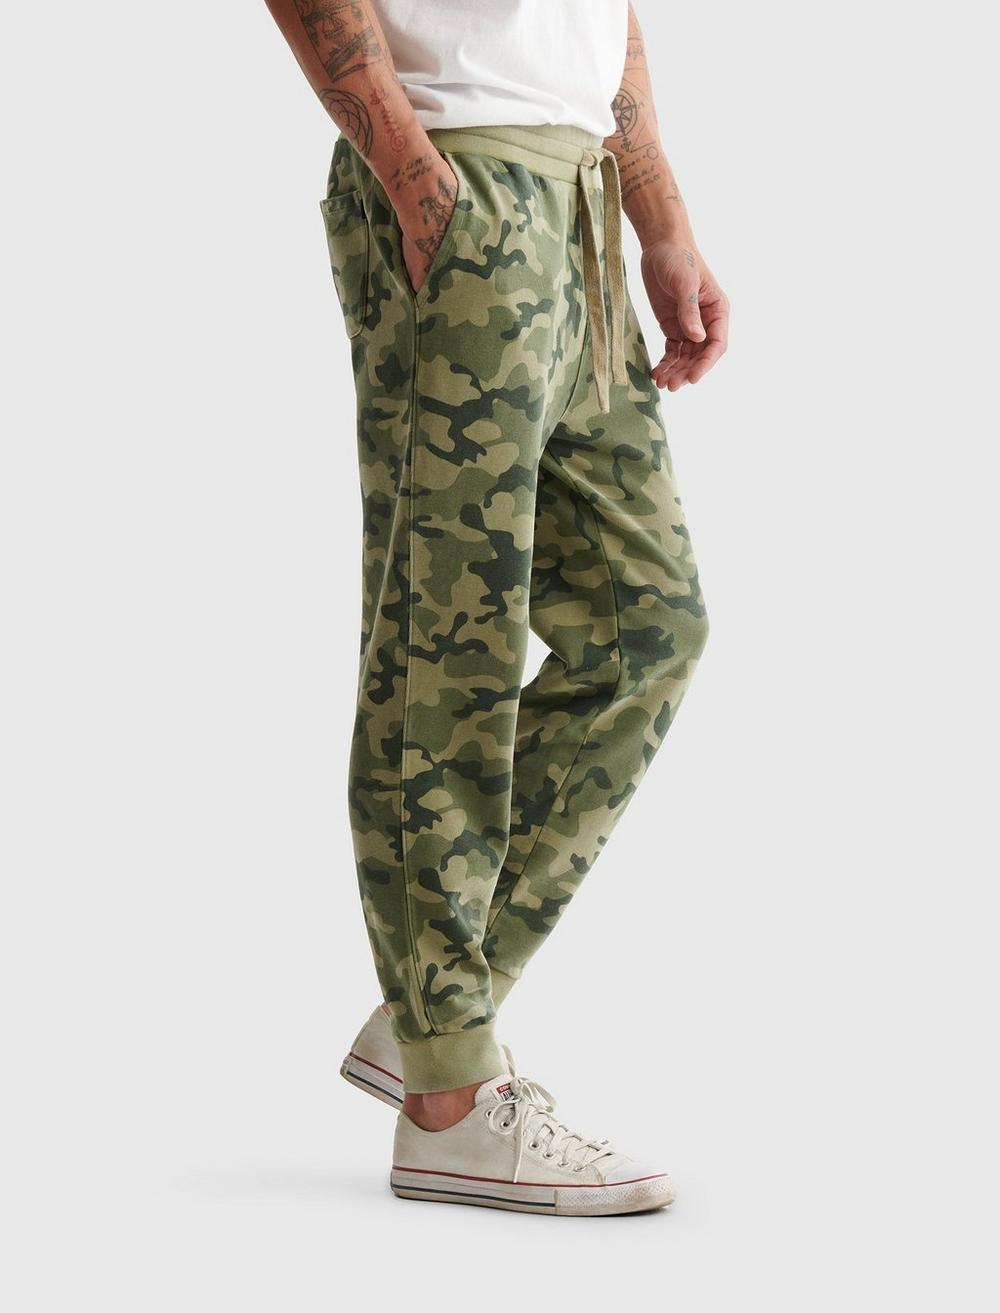 SUEDED TERRY CAMO JOGGER, image 3